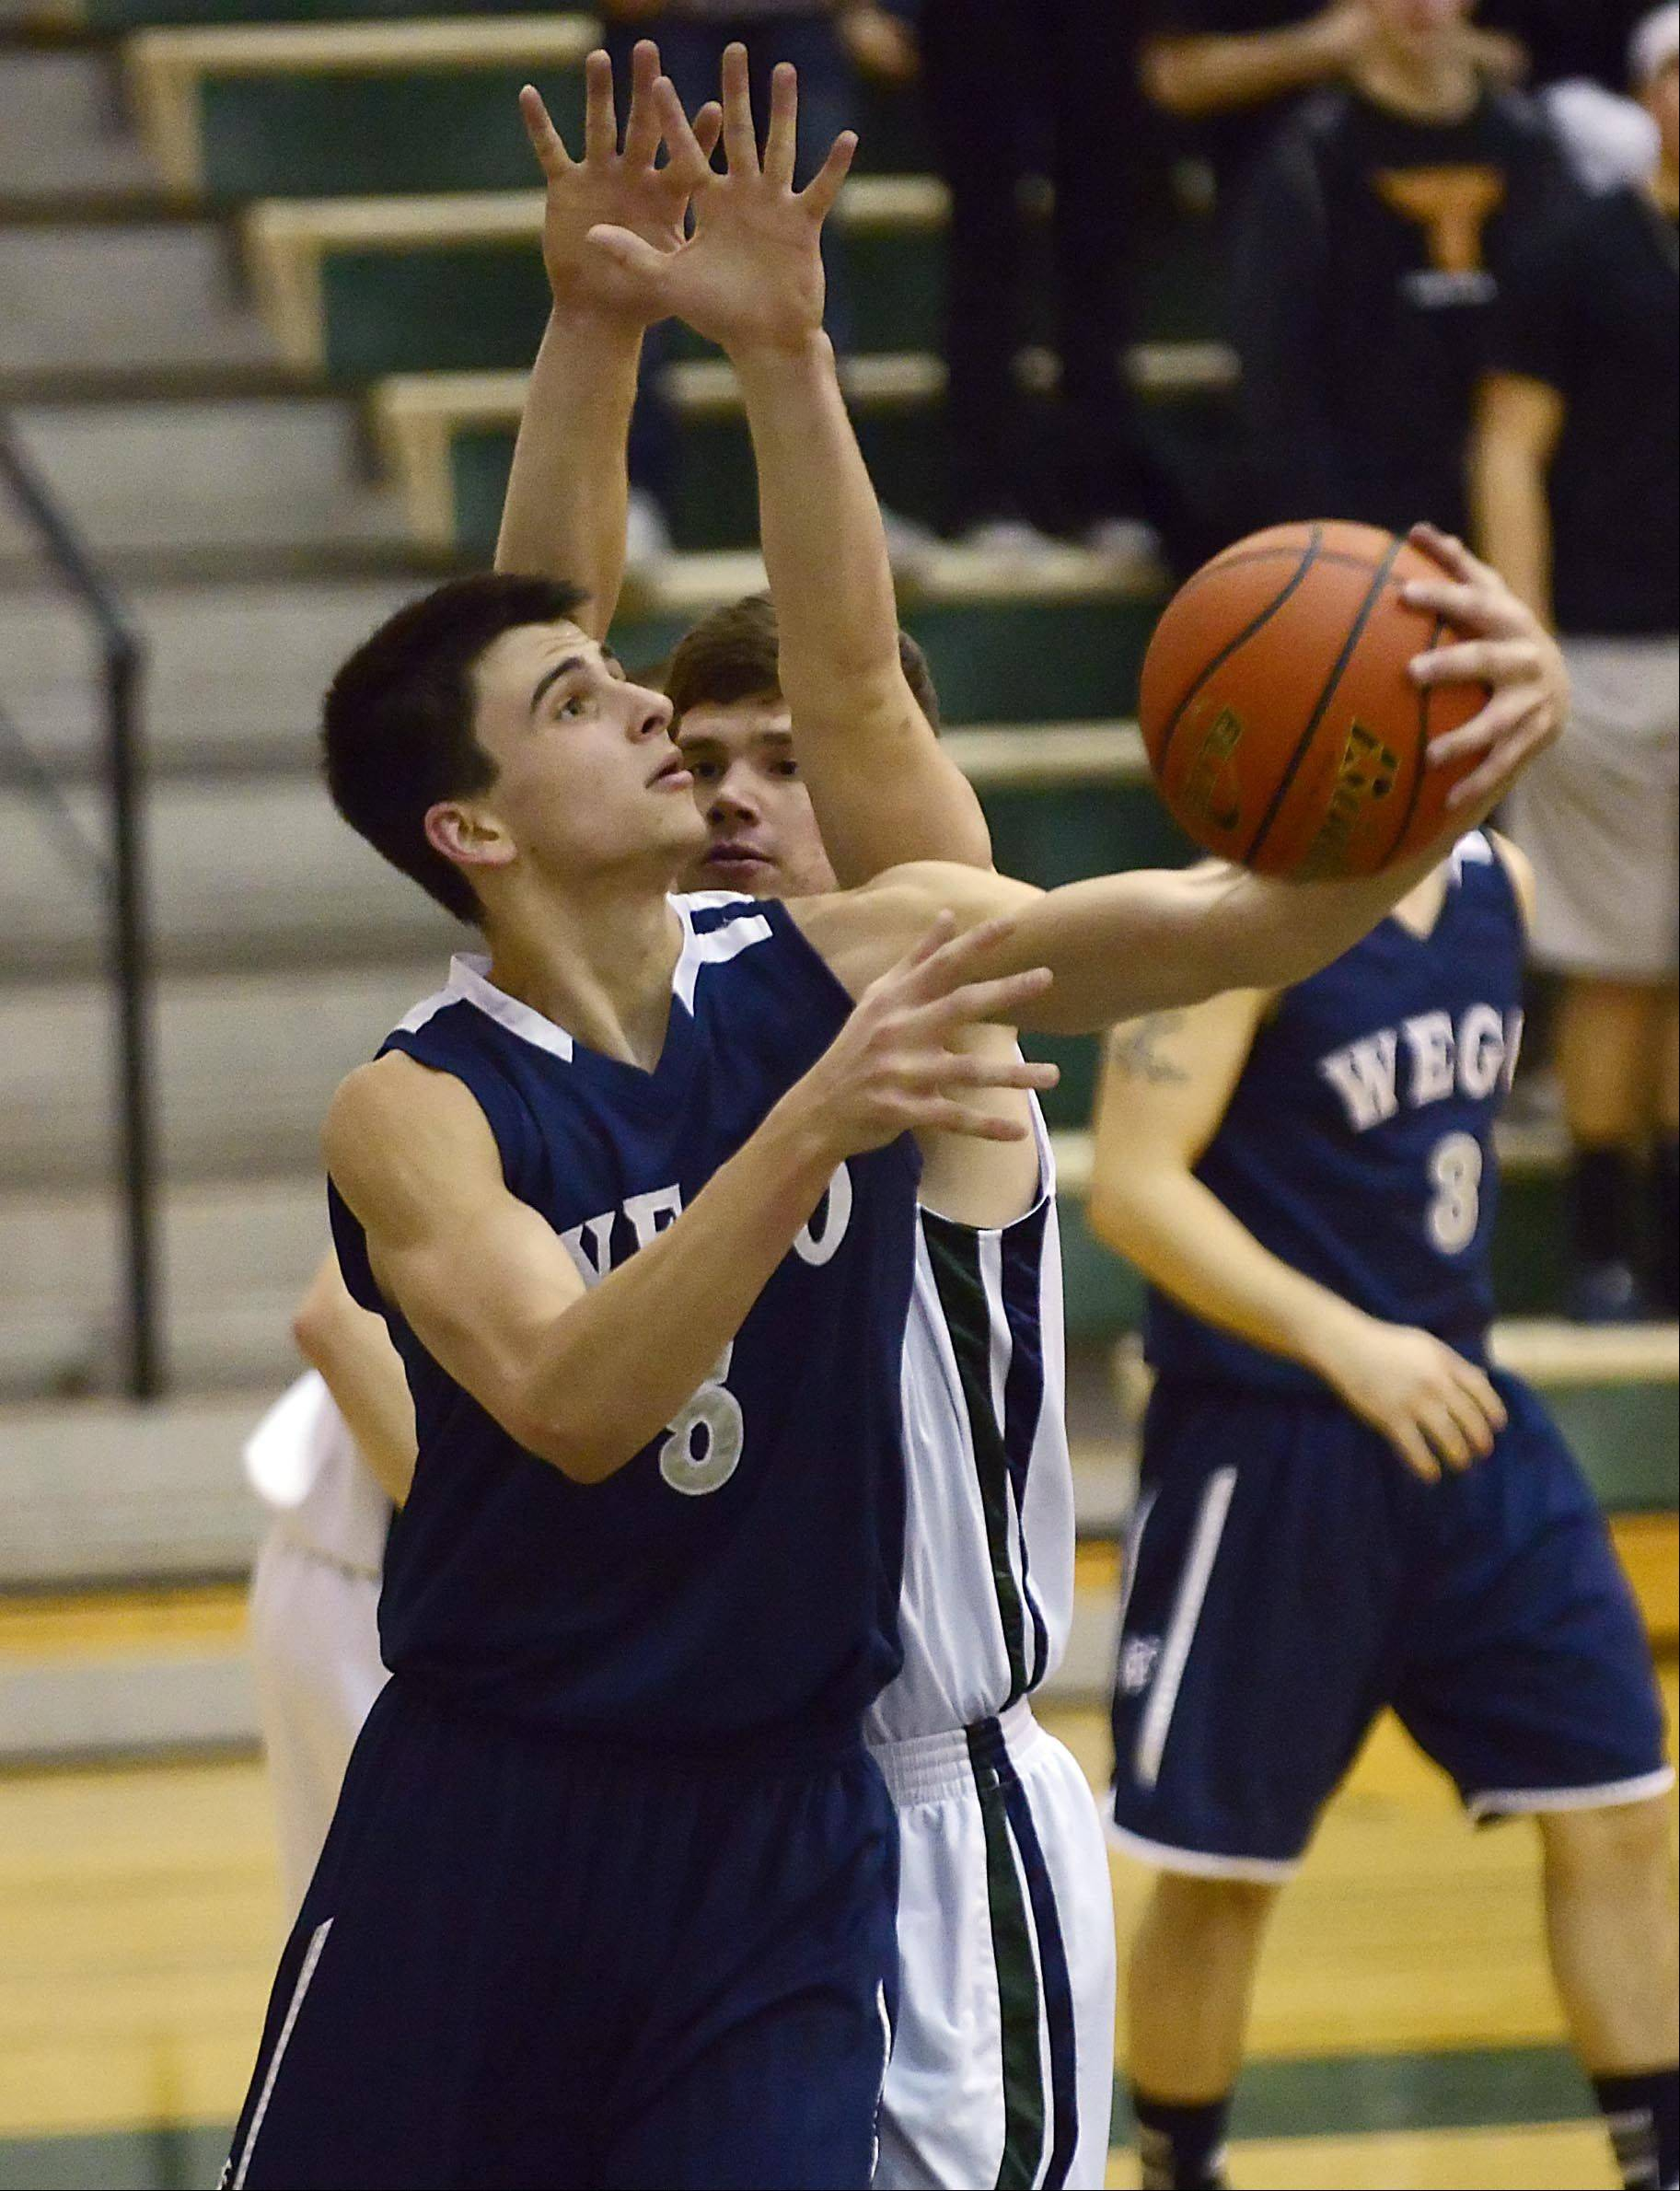 West Chicago's John Konchar is averaging 31 points a game.